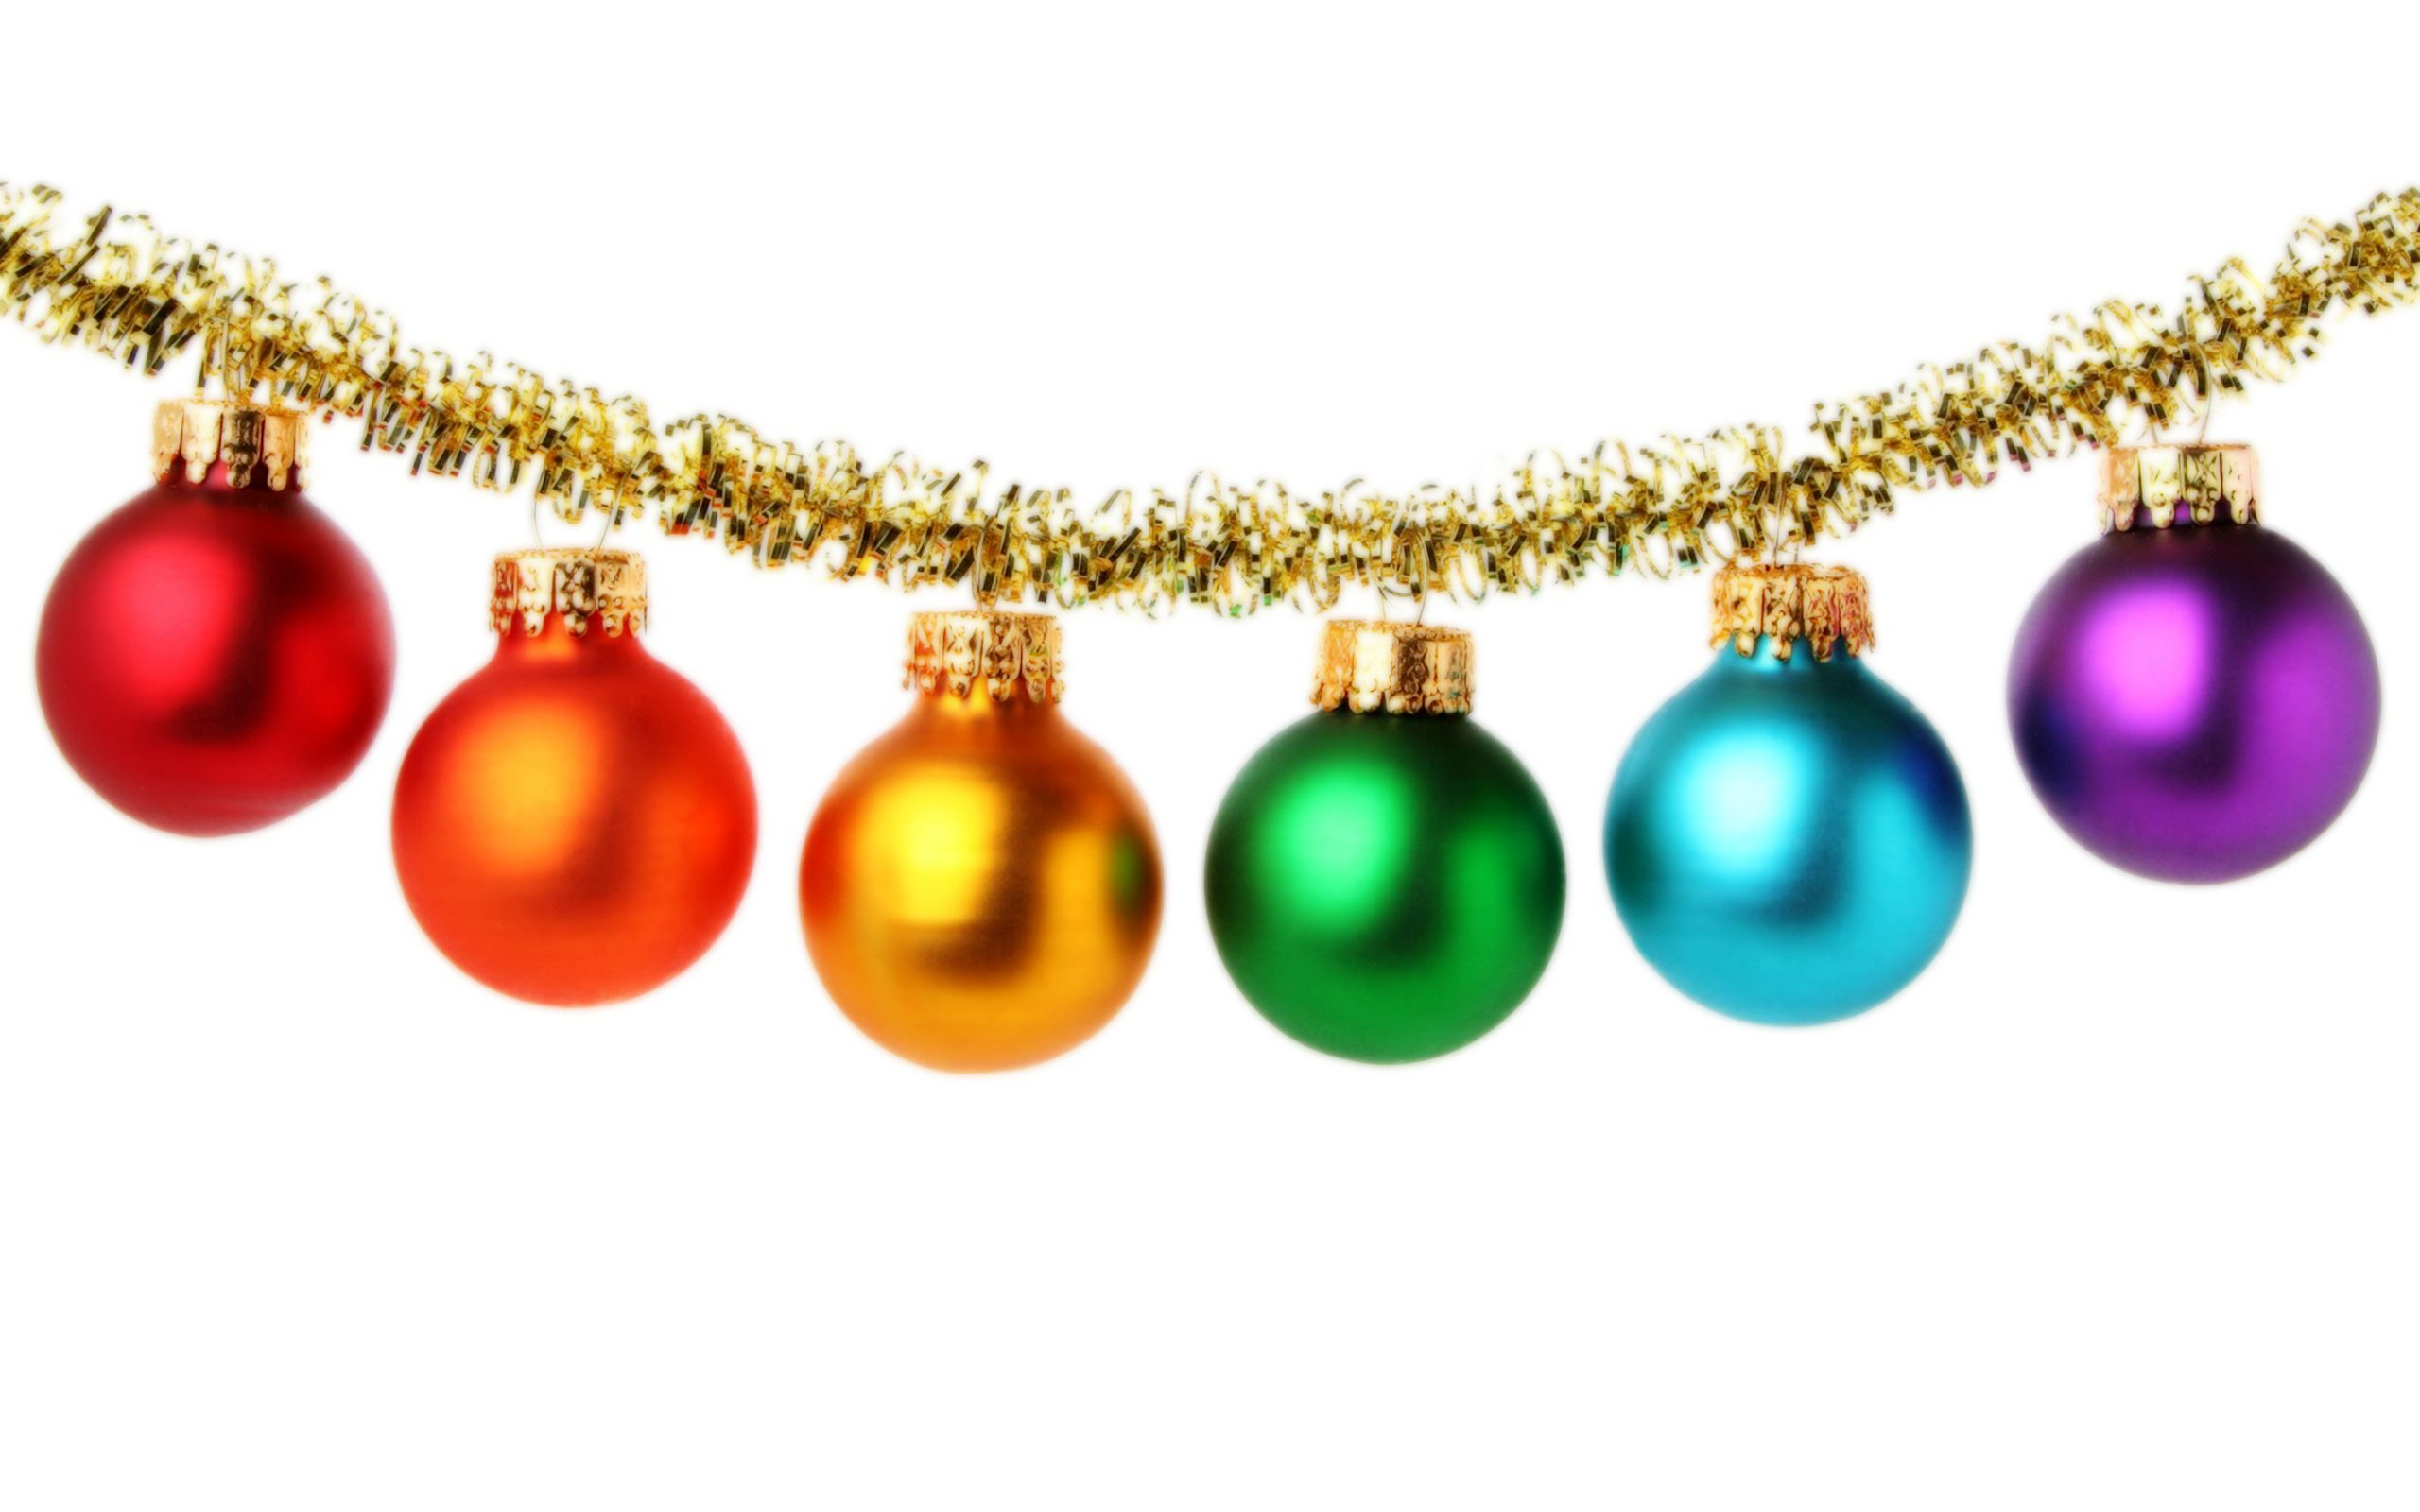 Ball Balls Decorations Christmas Ornament Is A Decoration Usually Made Of Glass Metal